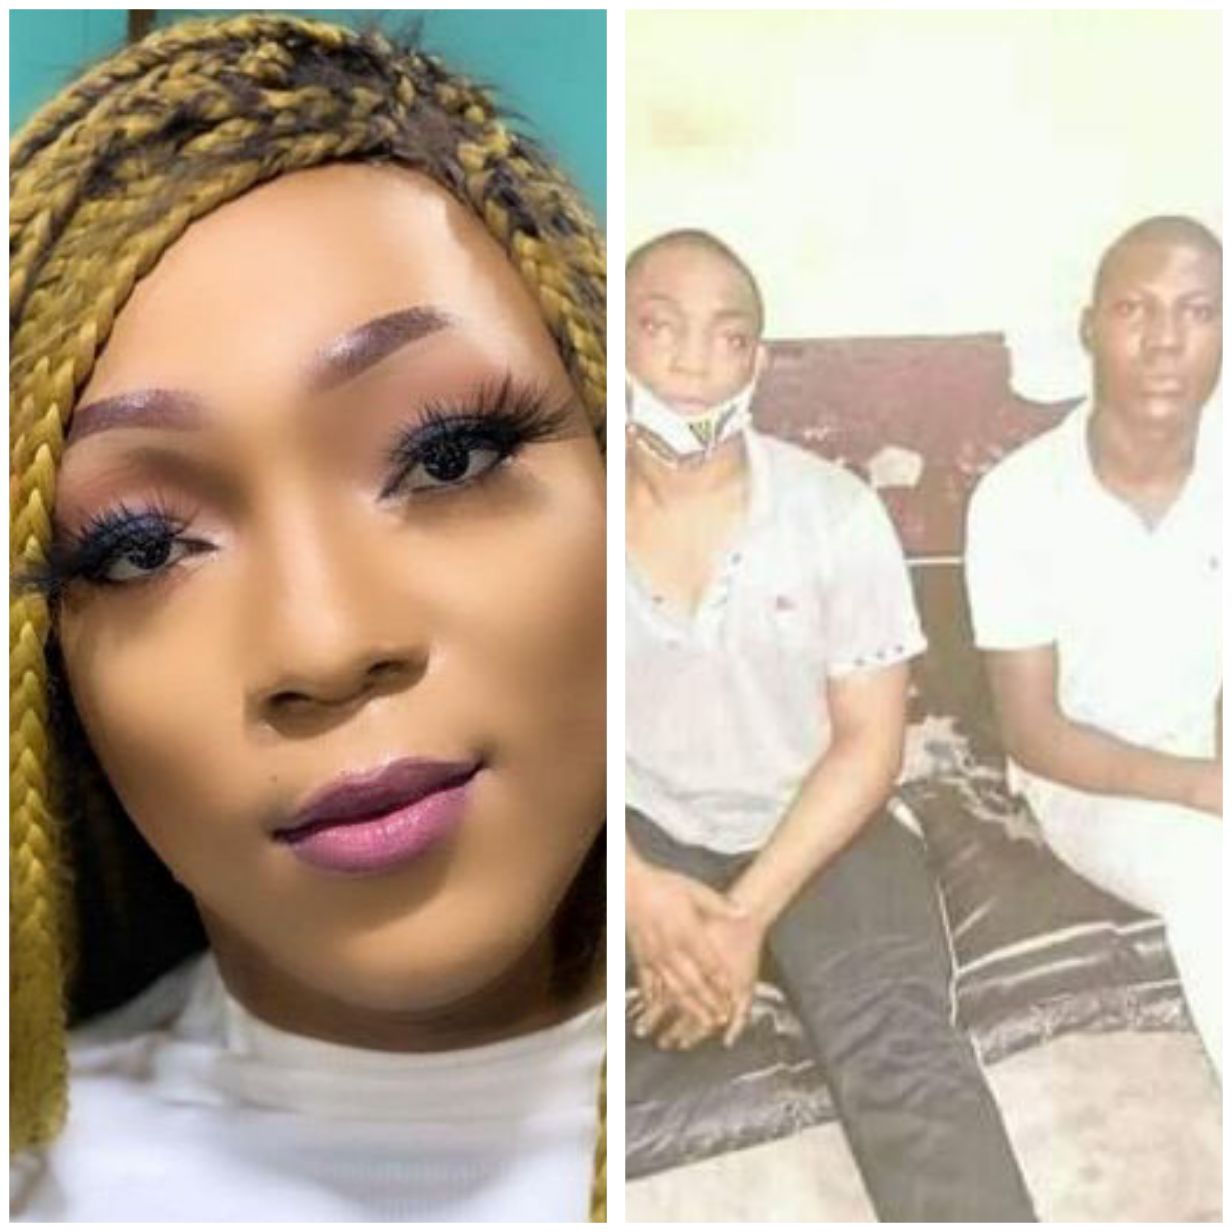 Popular Cameroonian crossdresser, Shakiro, one other sentenced to 5 years in prison for